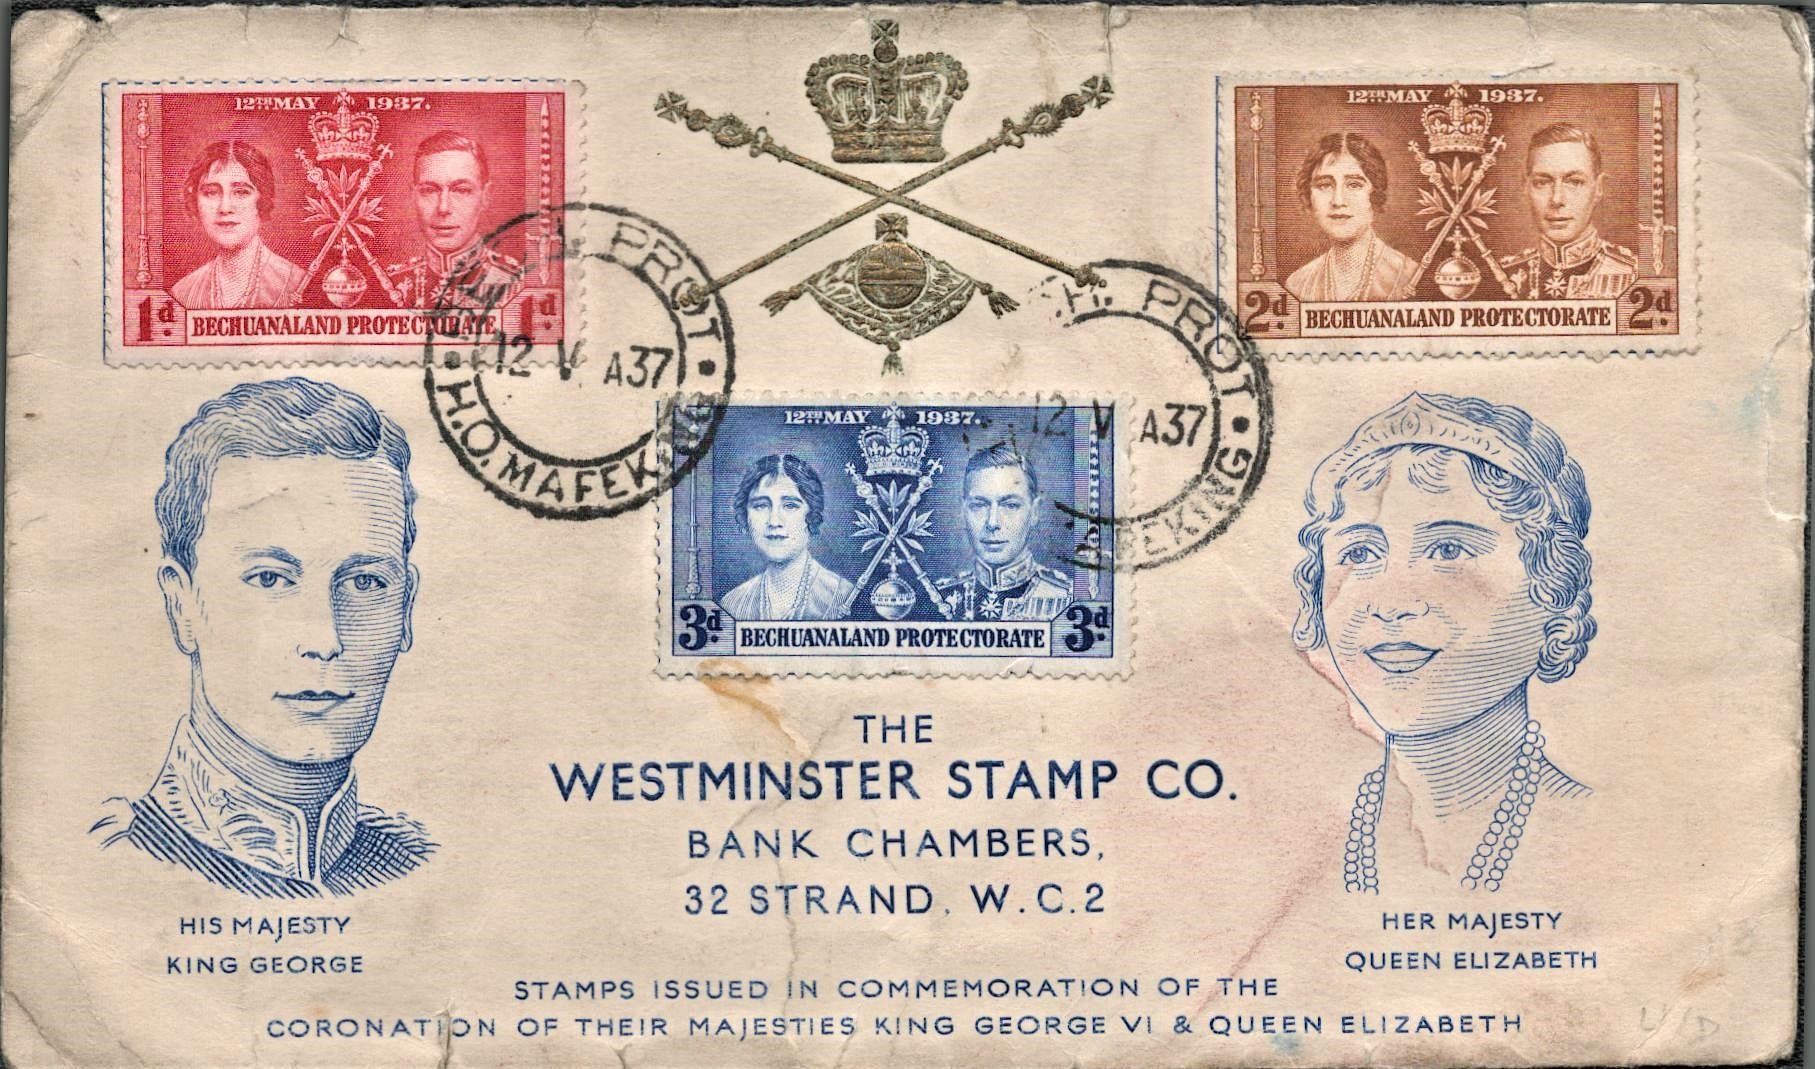 Bechuanaland protectorate FDC. 1937 coronation. High value. Good condition. We combine postage on